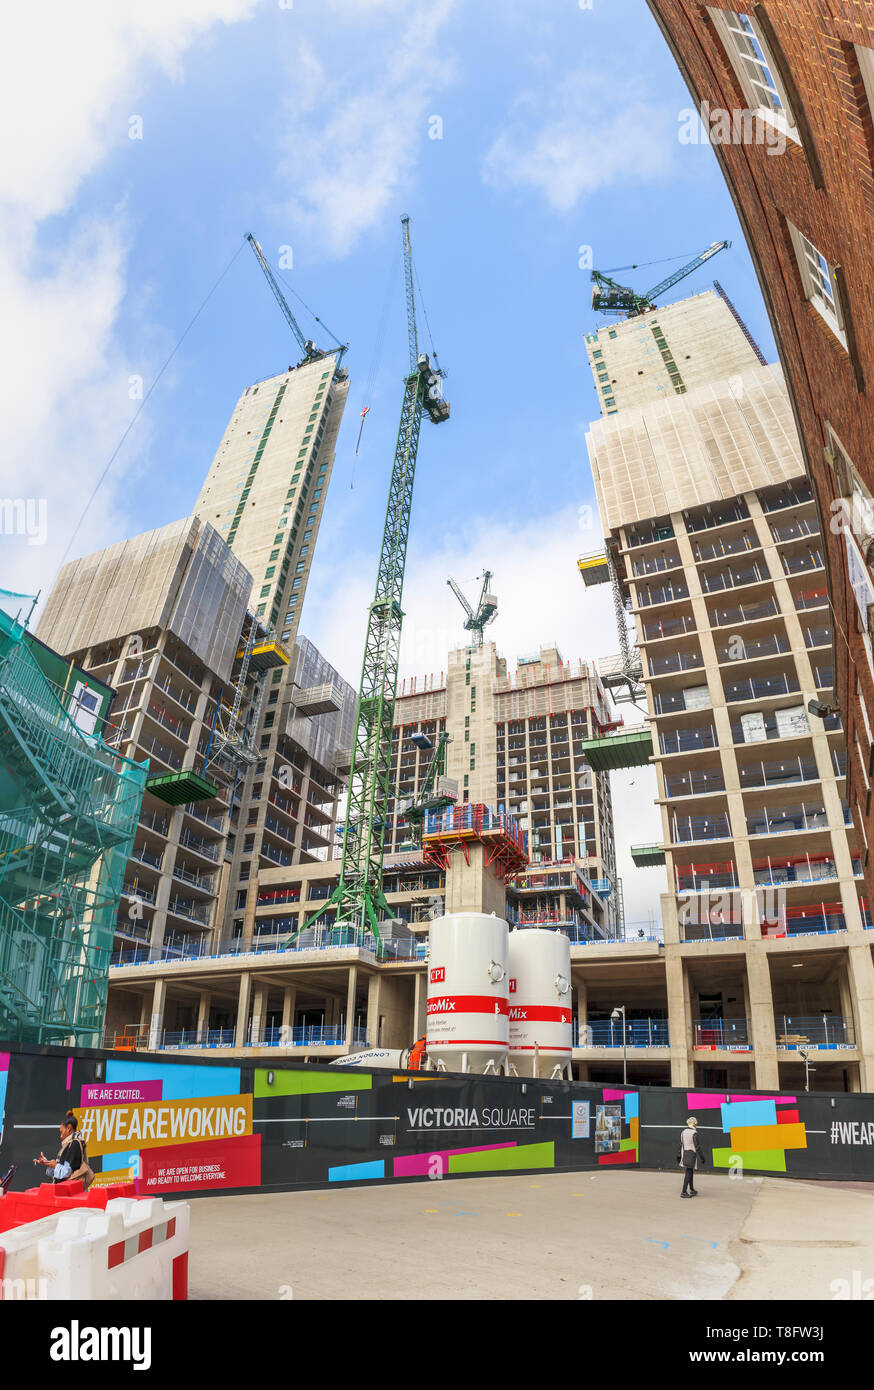 Woking, Surrey: construction of the new high rise mixed use Victoria Square development continues with concrete cores and tower cranes Stock Photo